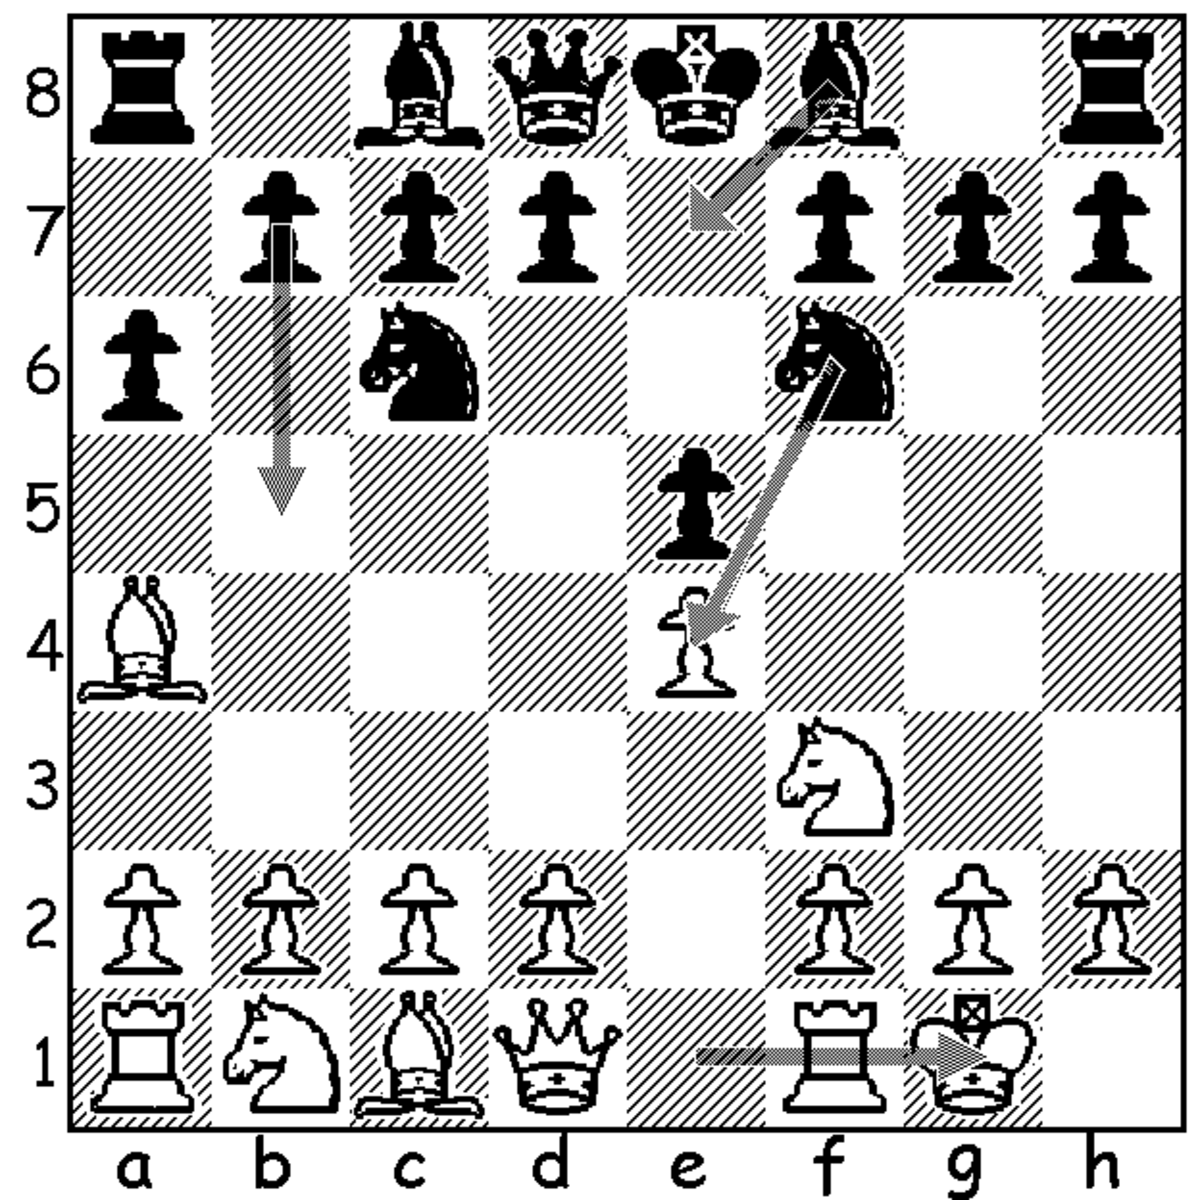 This shows black's three most common responses to white's fifth move, castles (5.0-0), in the mainline Ruy Lopez.